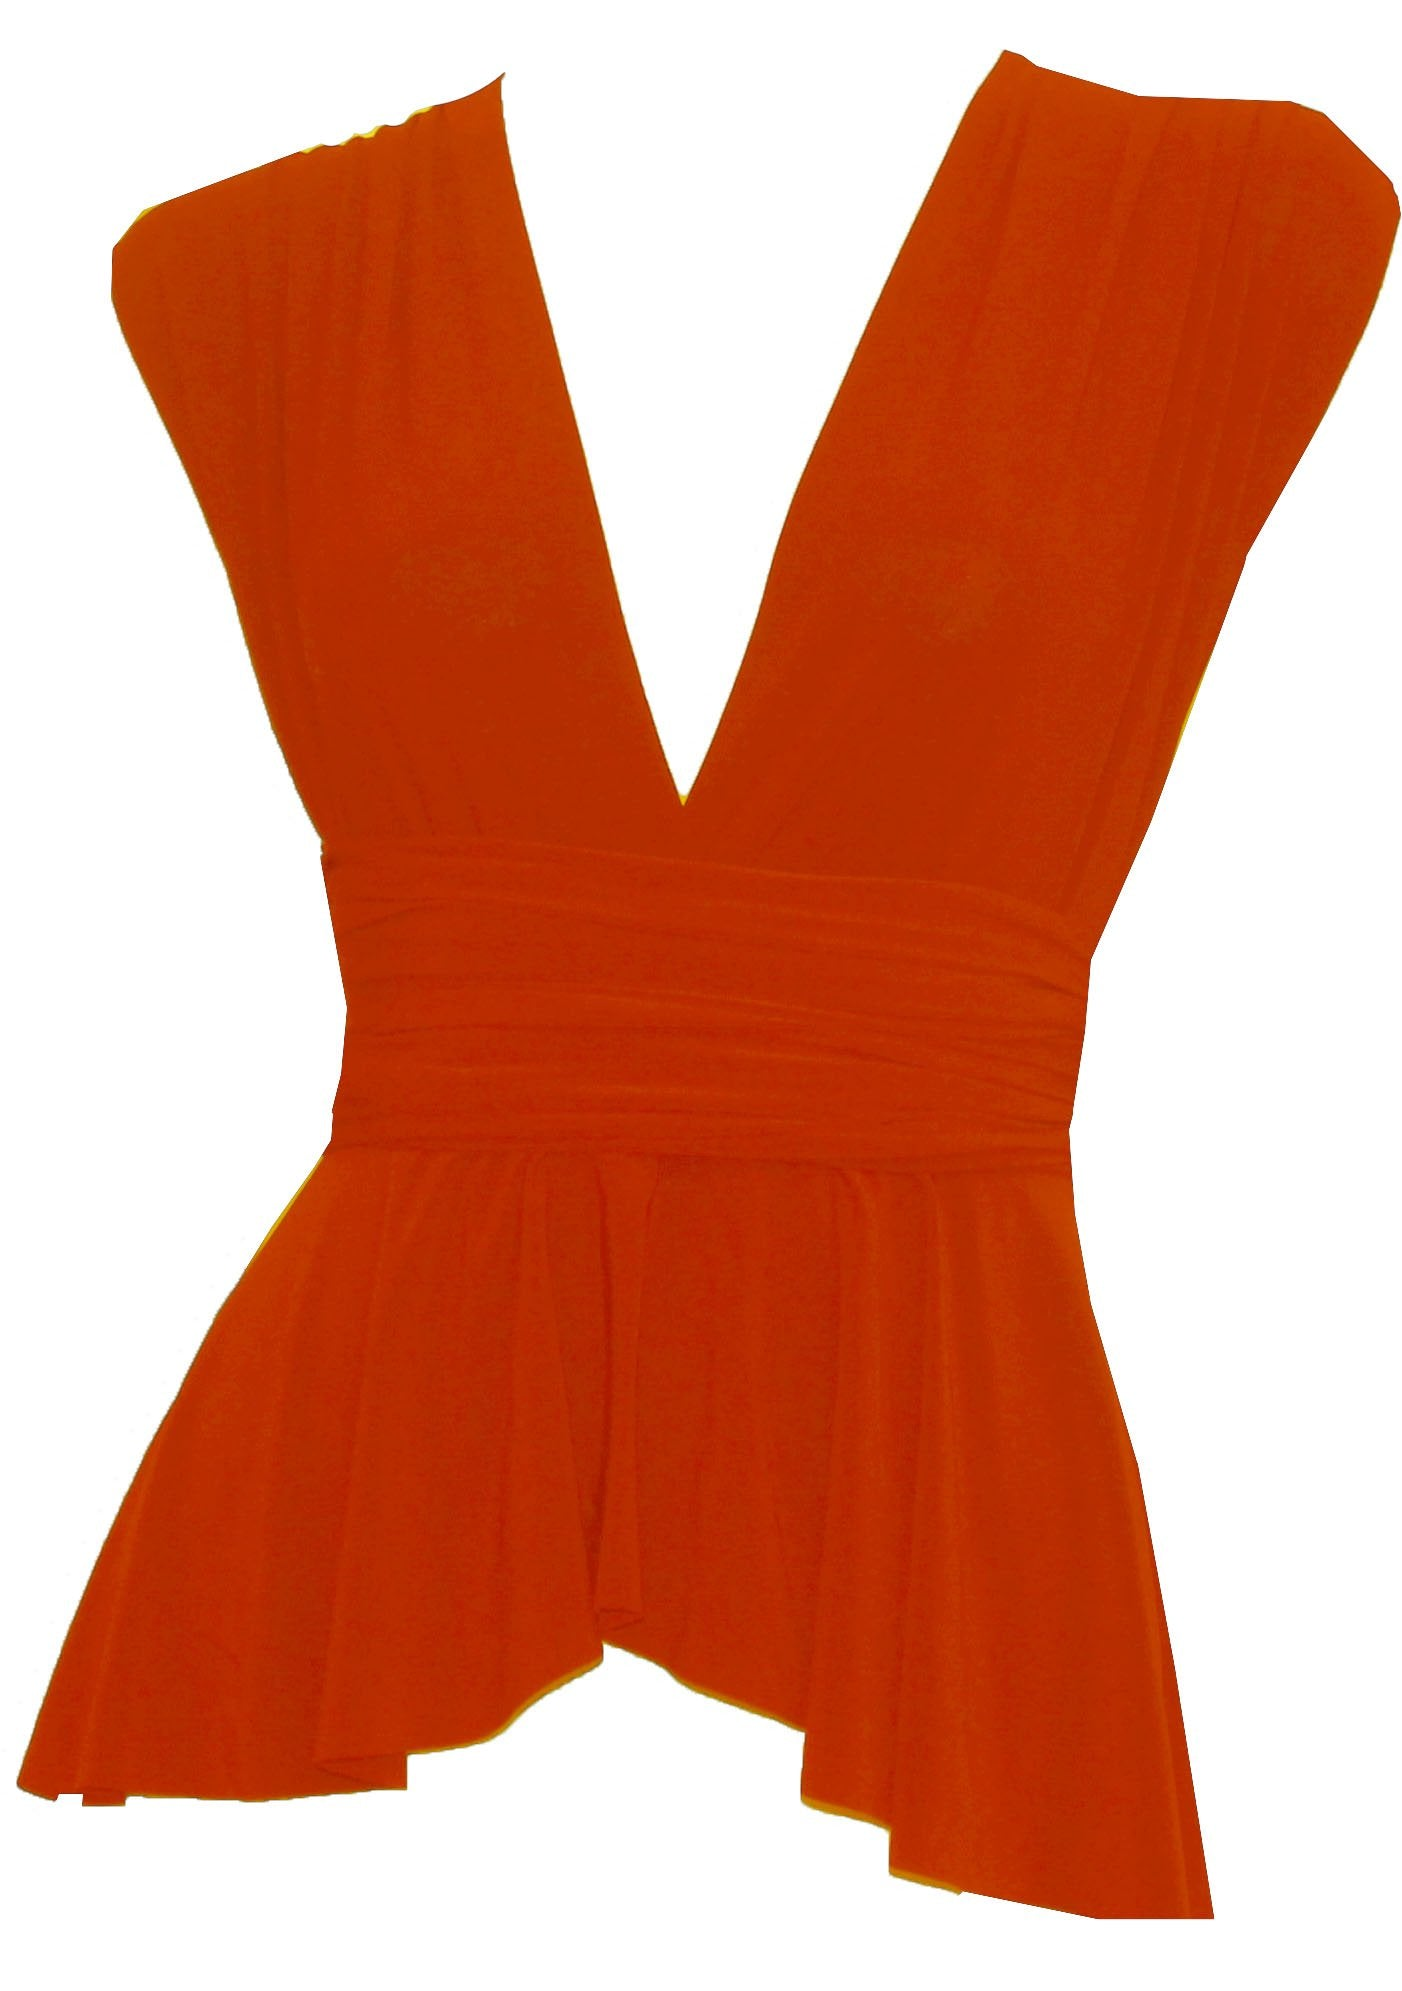 Convertible wrap shirt Bridesmaids peplum Orange infinity high low blouse Octopus prom top XS-5XL